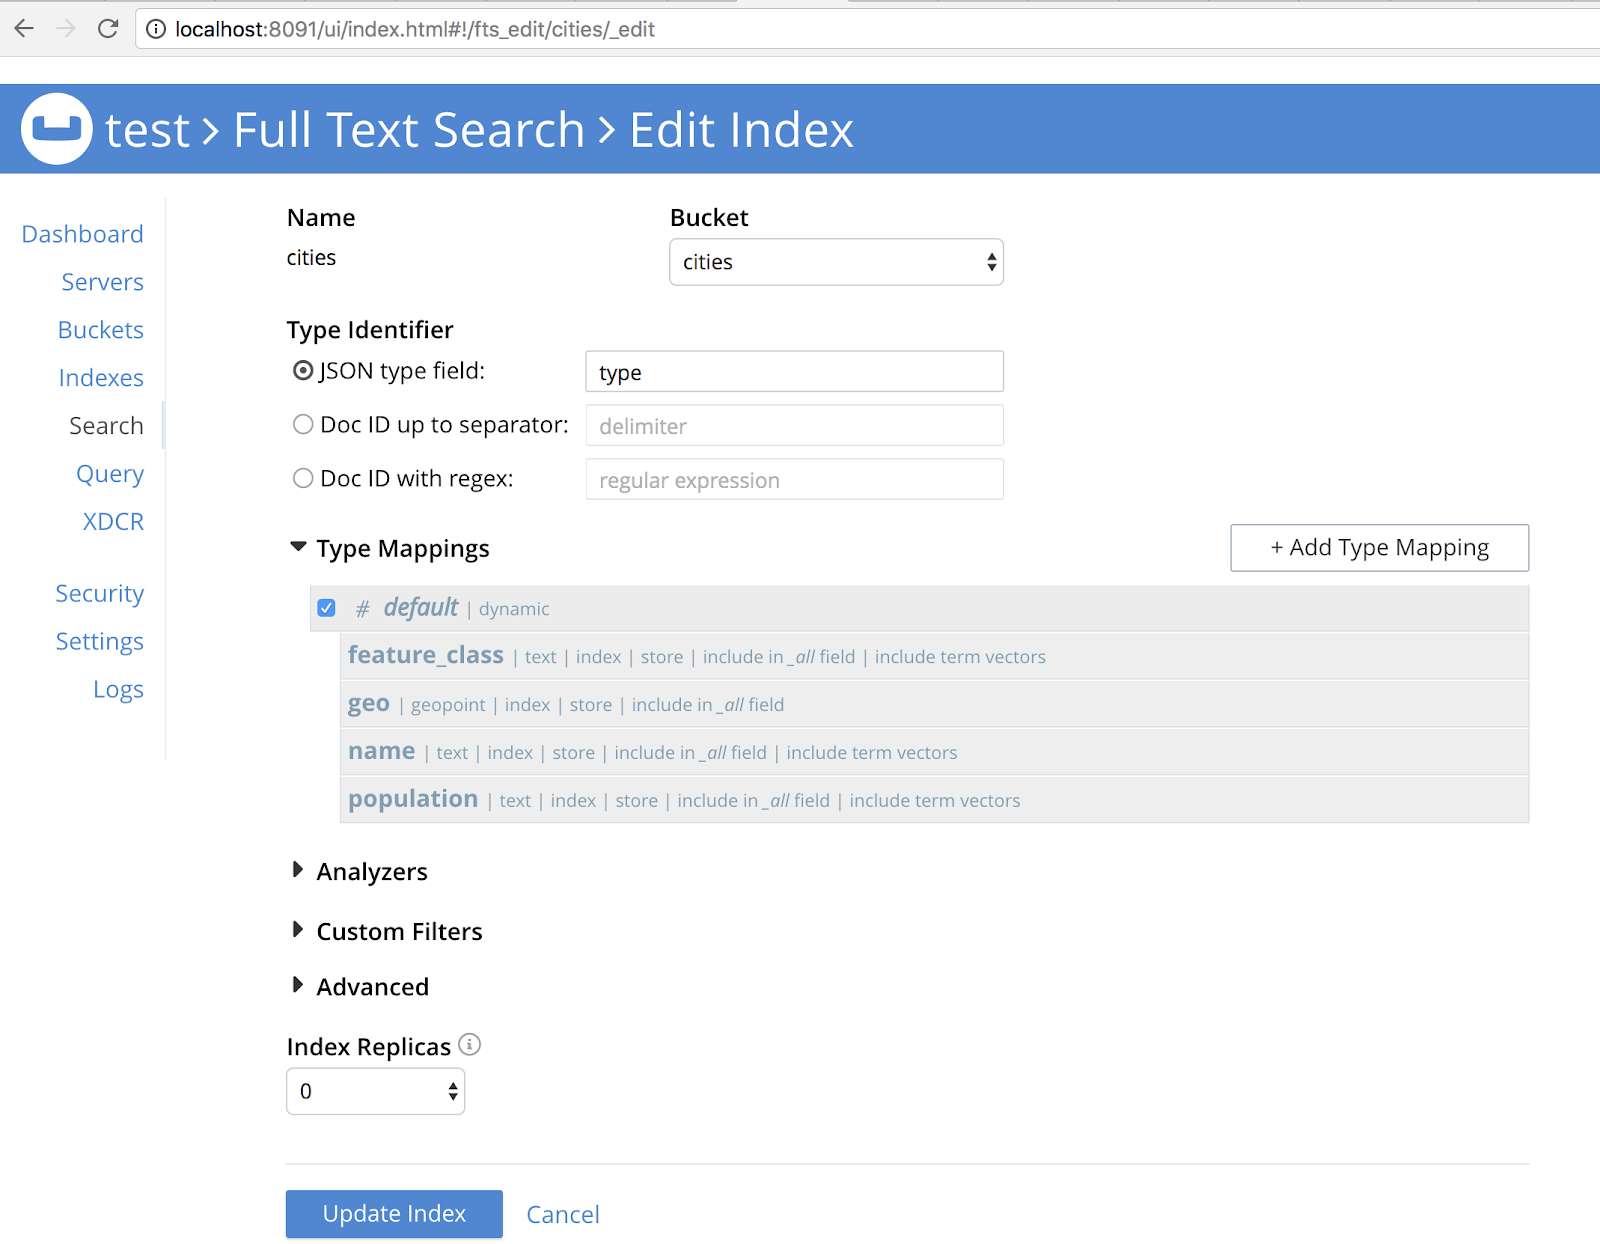 Configuring a geopoint type in the Couchbase search web GUI. That field contains GeoJSON point data.